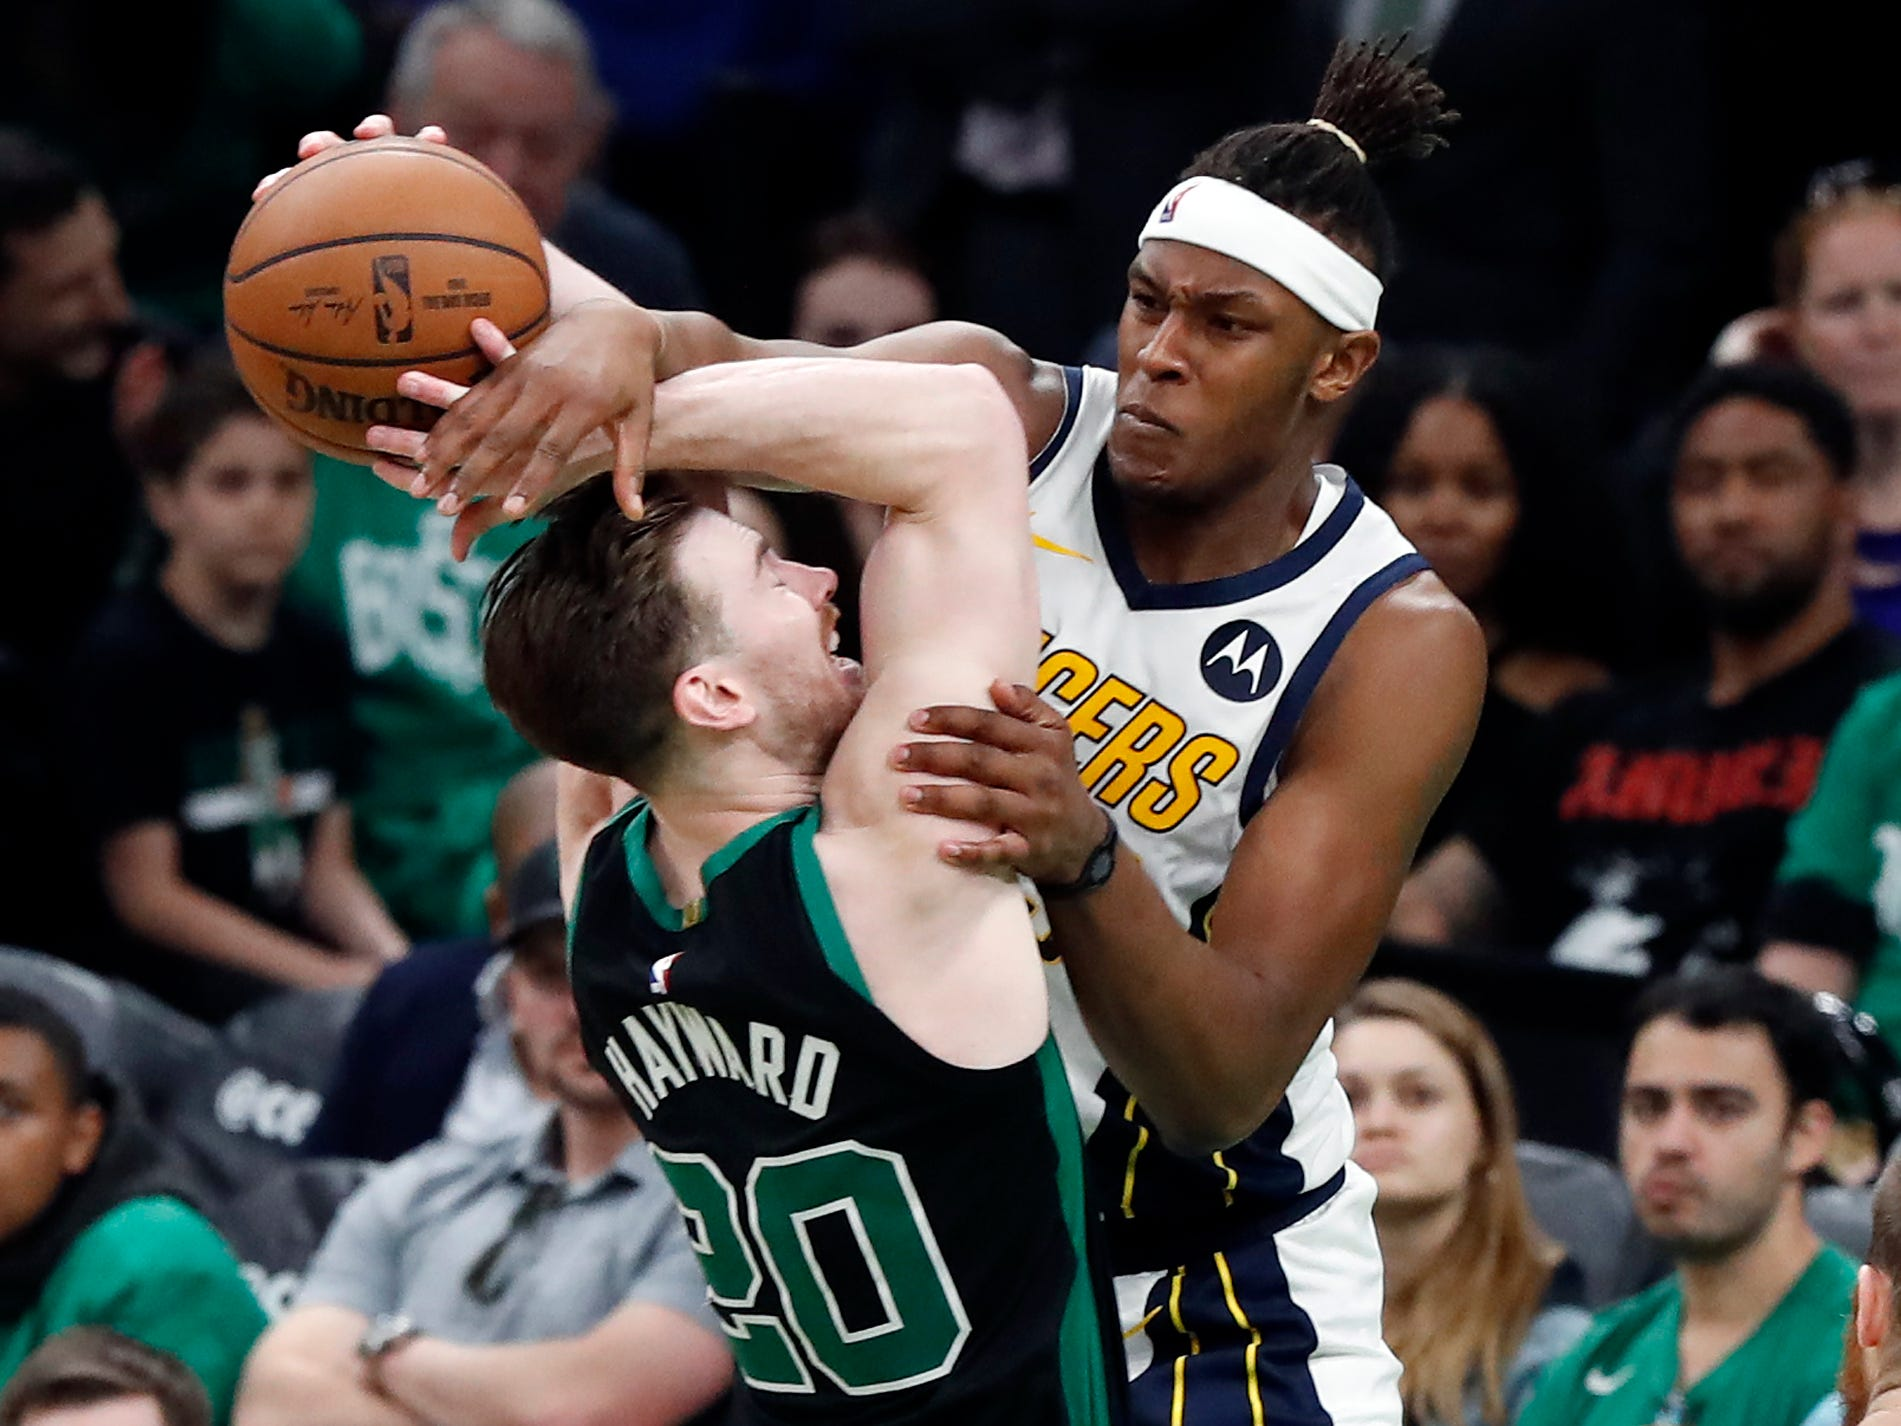 Indiana Pacers' Myles Turner, right, fouls Boston Celtics' Gordon Hayward as he goes to shoot during the fourth quarter in Game 1 of a first-round NBA basketball playoff series, Sunday, April 14, 2019, in Boston. (AP Photo/Winslow Townson)